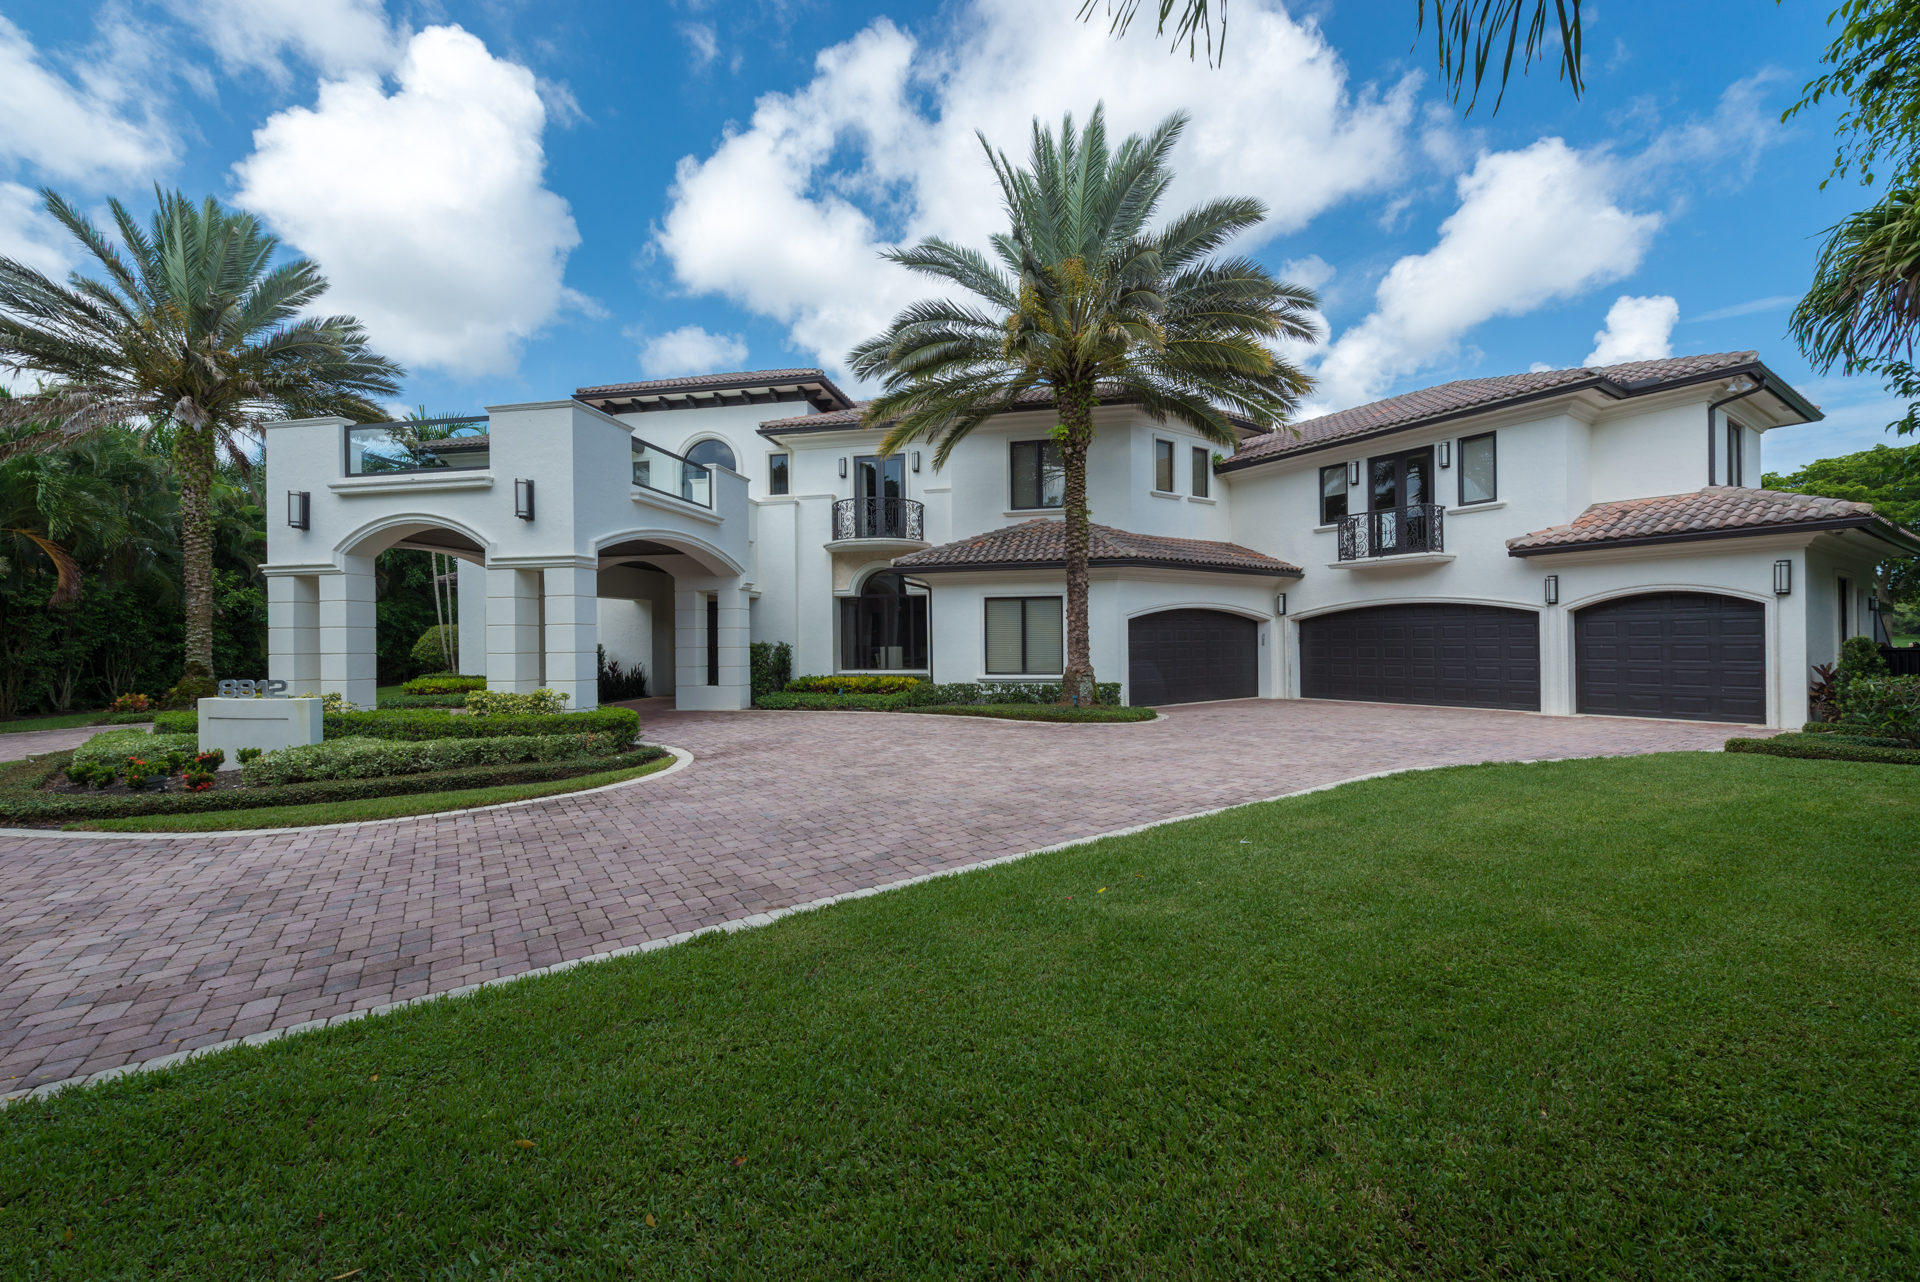 Home for sale in LONG LAKE ESTATES 1 AS Boca Raton Florida